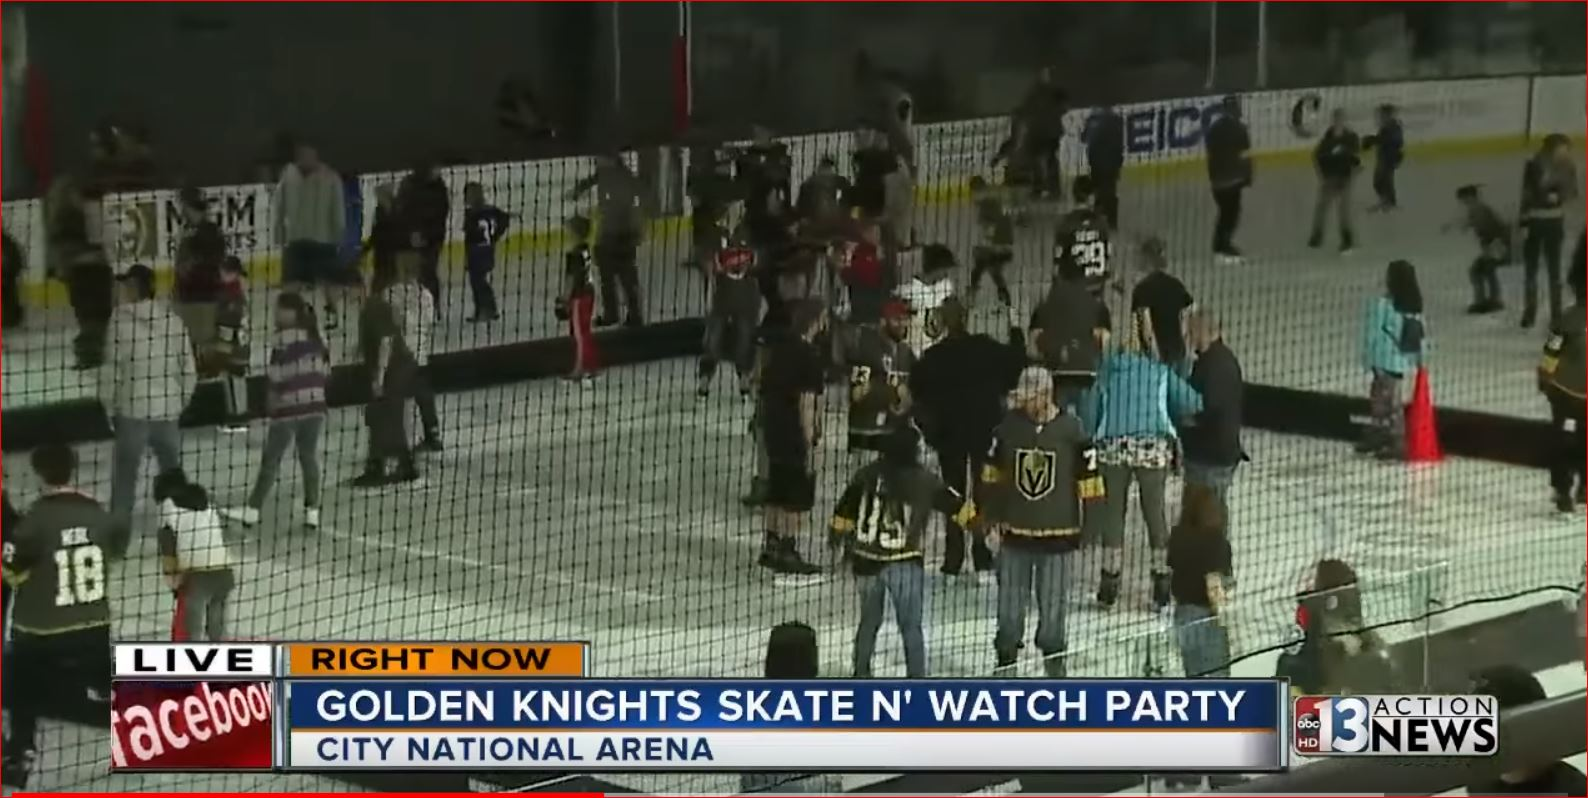 GOLDEN KNIGHTS SKATE AND WATCH PARTY